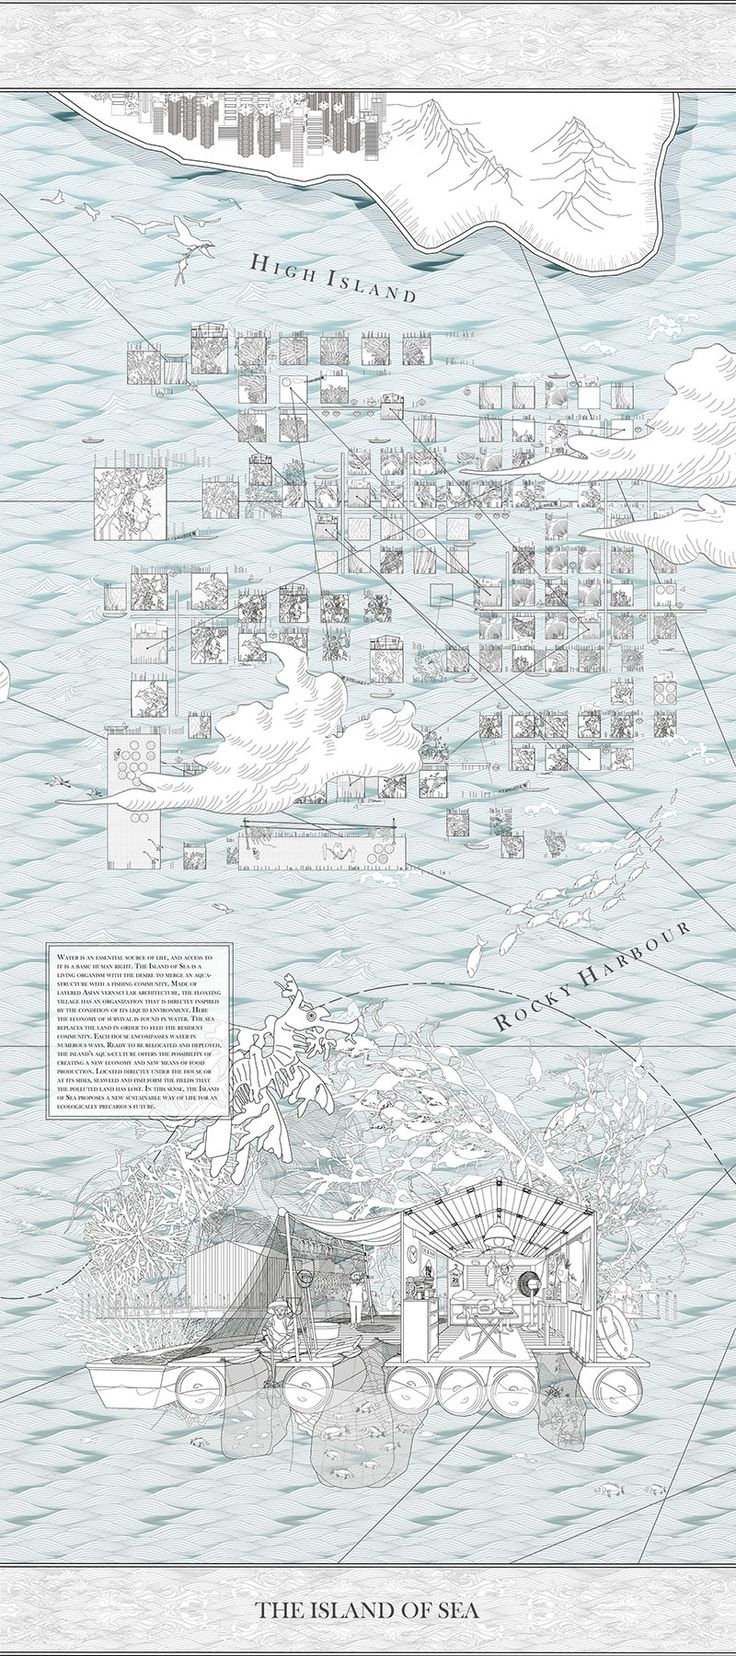 MAP Office: Hong Kong Is Land. Uneven Growth: Tactical Urbanisms for Expanding Megacities exhibition